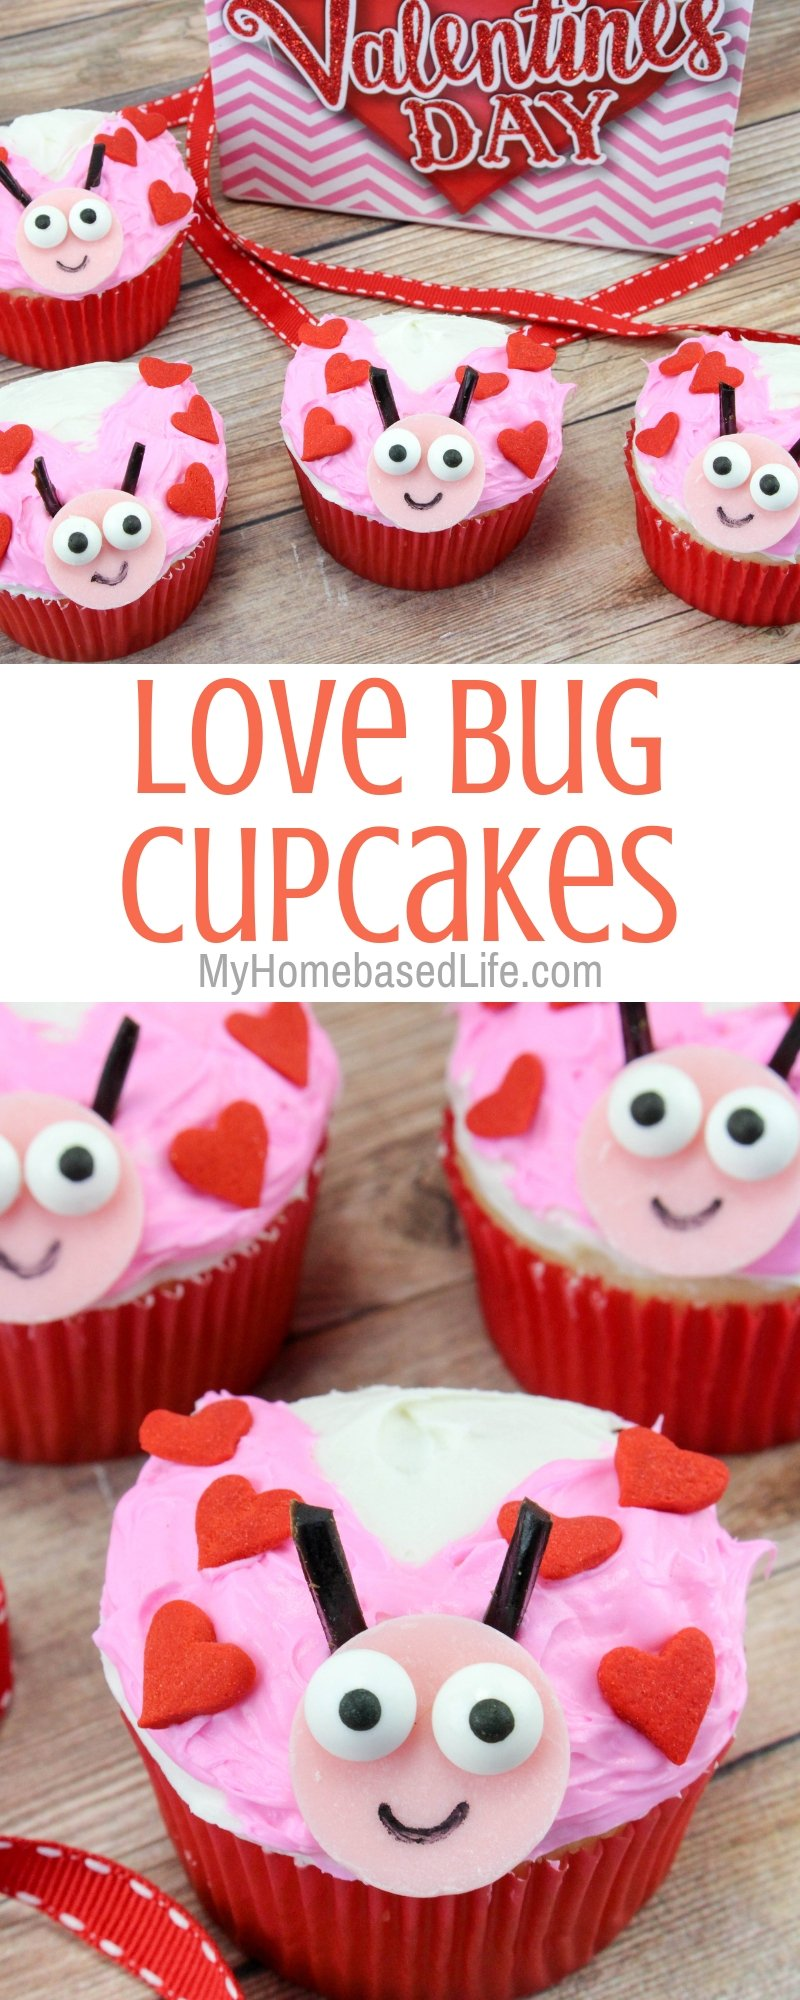 I have the perfect dessert recipe for you to make for your kiddos this Valentine's Day. These Love Bug Cupcakes are super easy and simple. #valentinesday #dessertrecipe #lovebugs #myhomebasedlife   Valentine's Day Desserts   Food Art   Love Bug Recipes   Cupcake Recipes   Chocolate Desserts   Simpler Desserts  